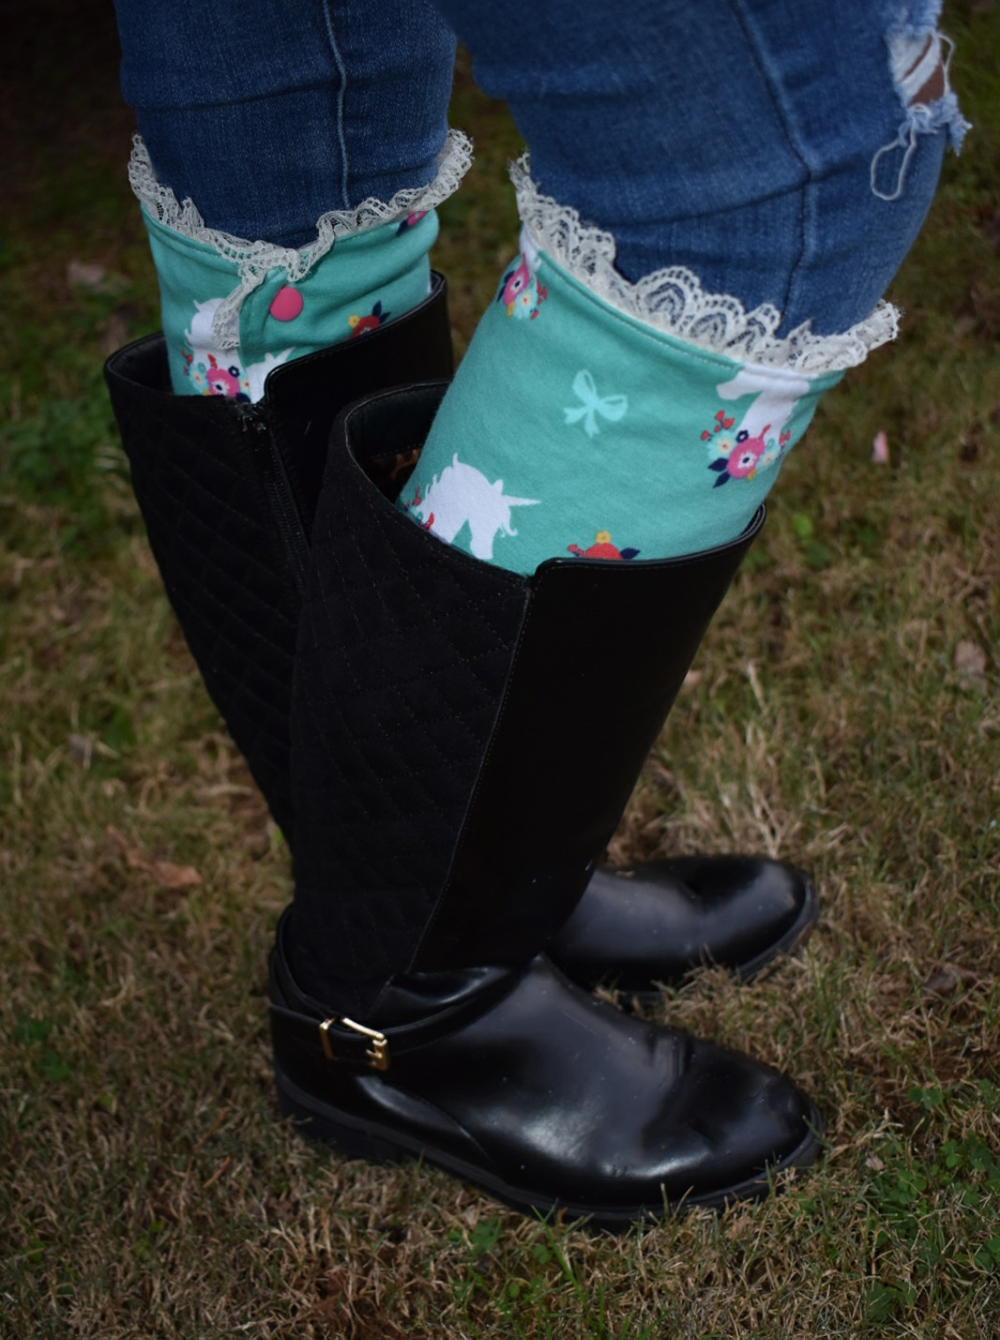 Sierra's Boot Cuffs in Sizes Kids and Adults PDF Pattern